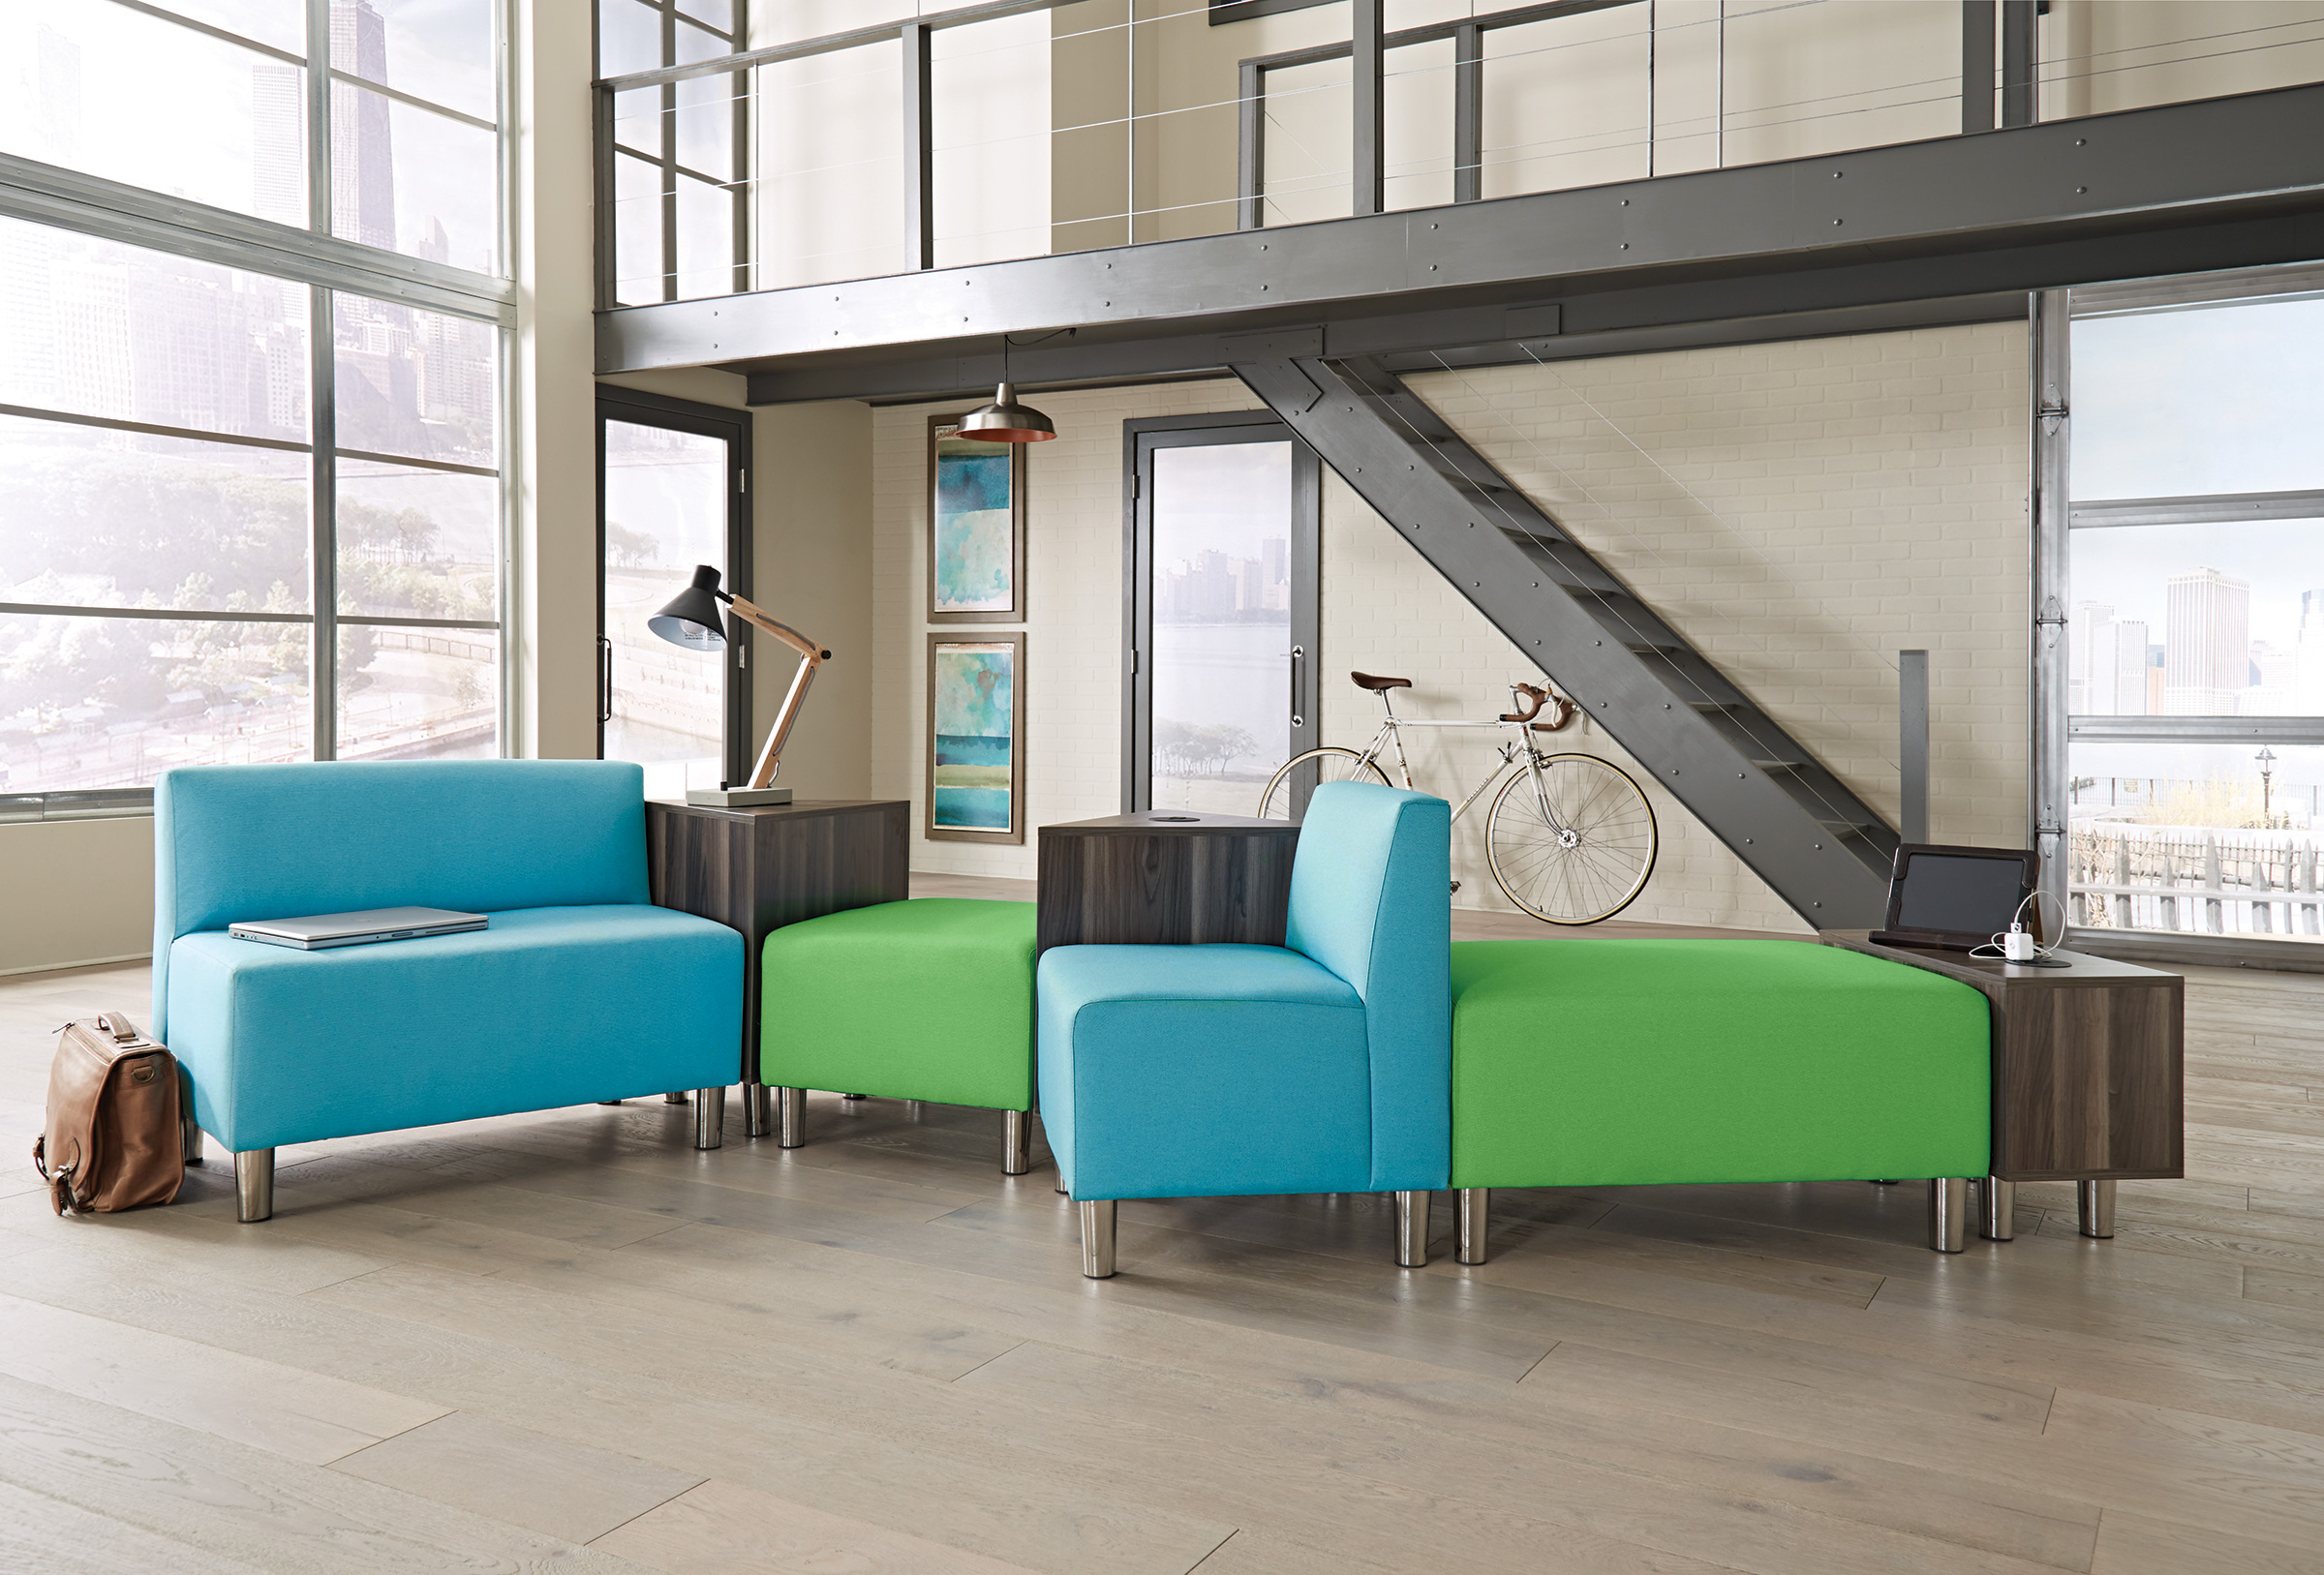 flx zoll collection offered by Indoff Office Interiors.jpg